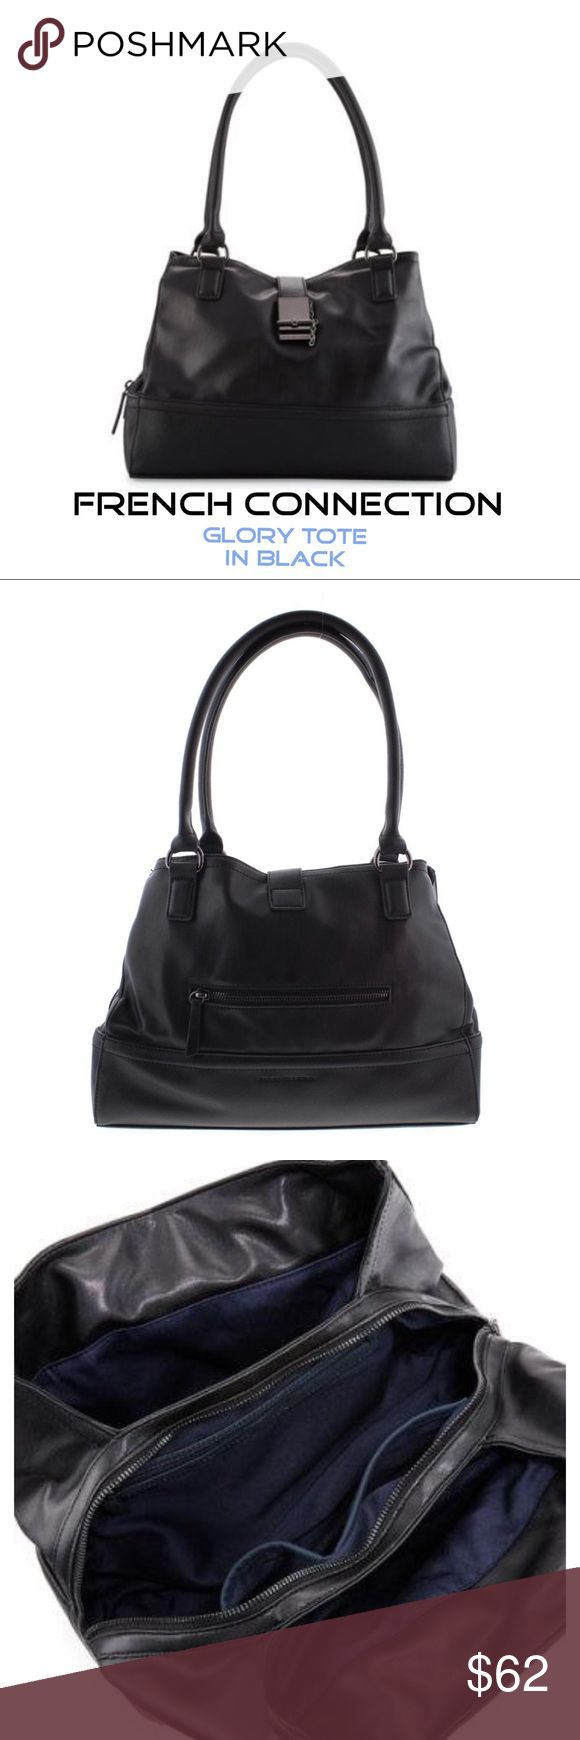 "FRENCH CONNECTION ✨Black 'Glory' Tote NWT✨ Gorgeous functional bag by French Connection, 'Glory' style. MSRP $118, Black. Features-2 rolled top handles, gunmetal & black hardware, black exterior stitching, flat bottom, faux leather, smooth and contrast saffiano, approx 8.5"" handle drop, 10.25"" Hx 13.25""Wx 4.75"" D. Back exterior zip pocket. 3 main compartments, 2 on out side are open, middle has zipper w/ add'l zipper pocket and 2 others. Twill interior lining. All in original wrapping w…"